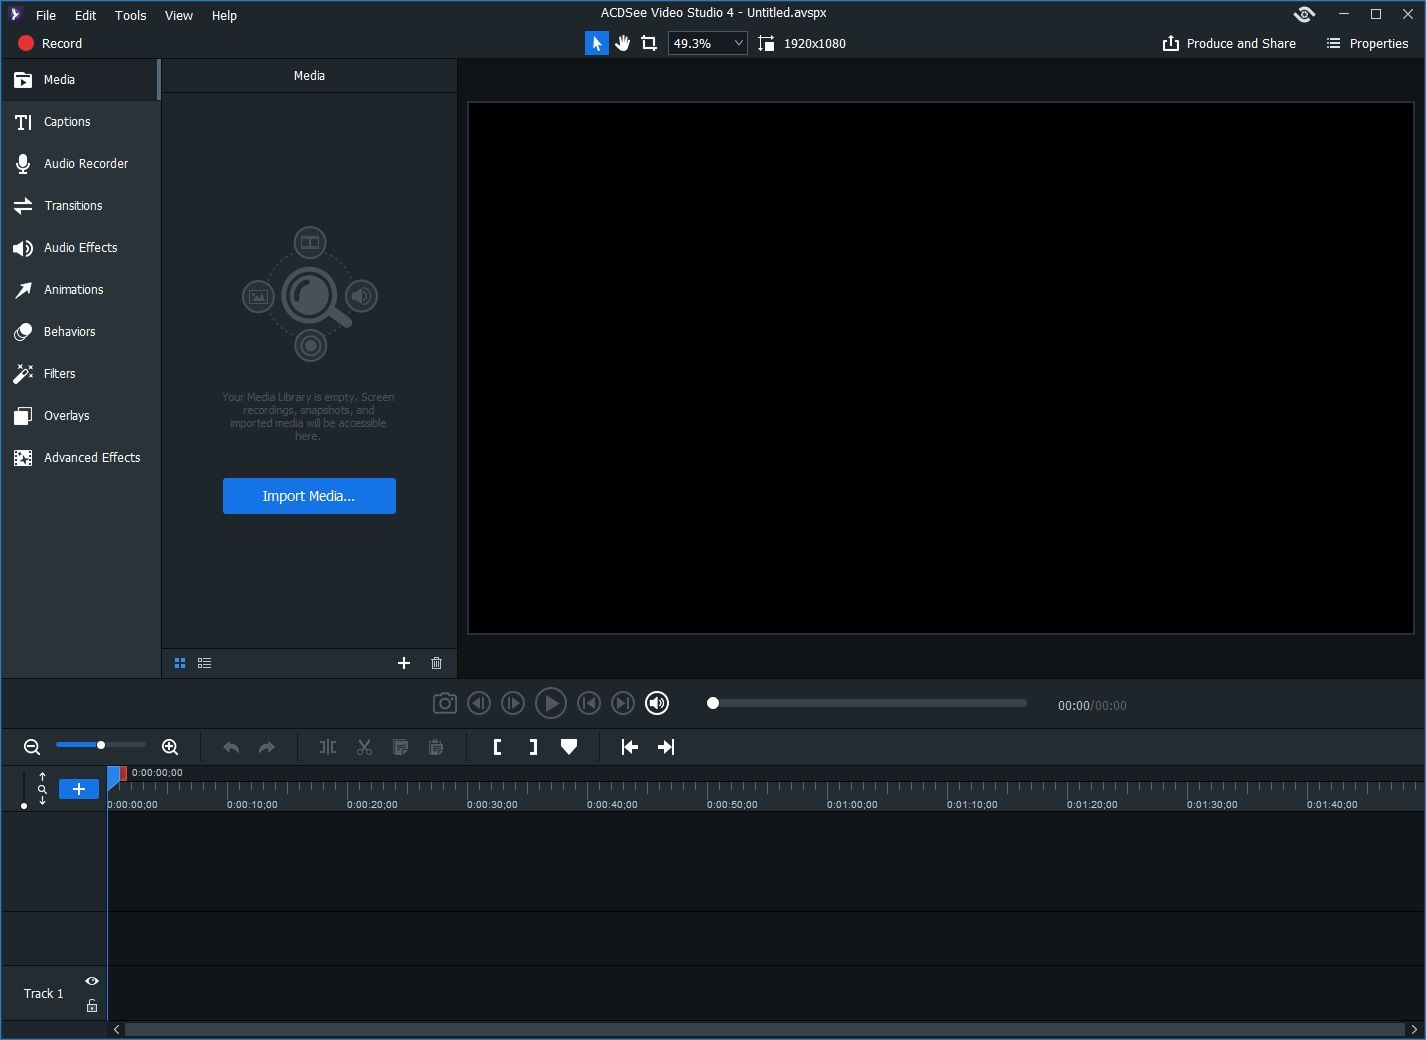 ACDSee Video Studio 4.0.0.933 x64 - ENG